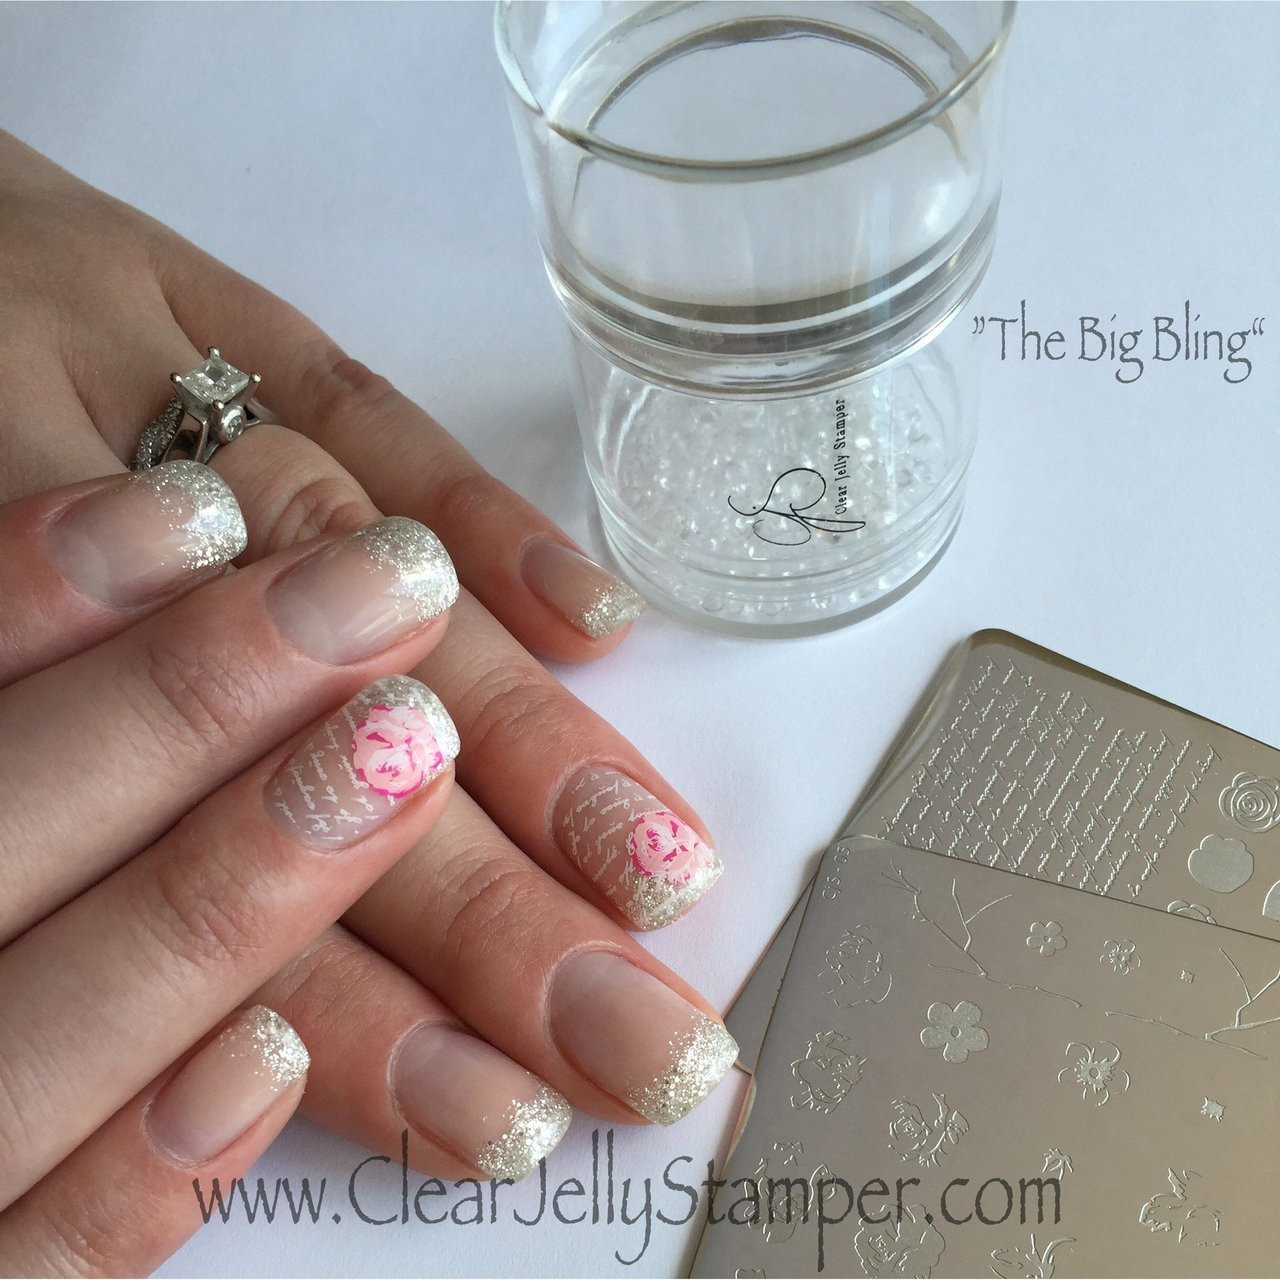 Clear Jelly Stamper Big Bling stamper, available in the USA at www.lanternandwren.com.